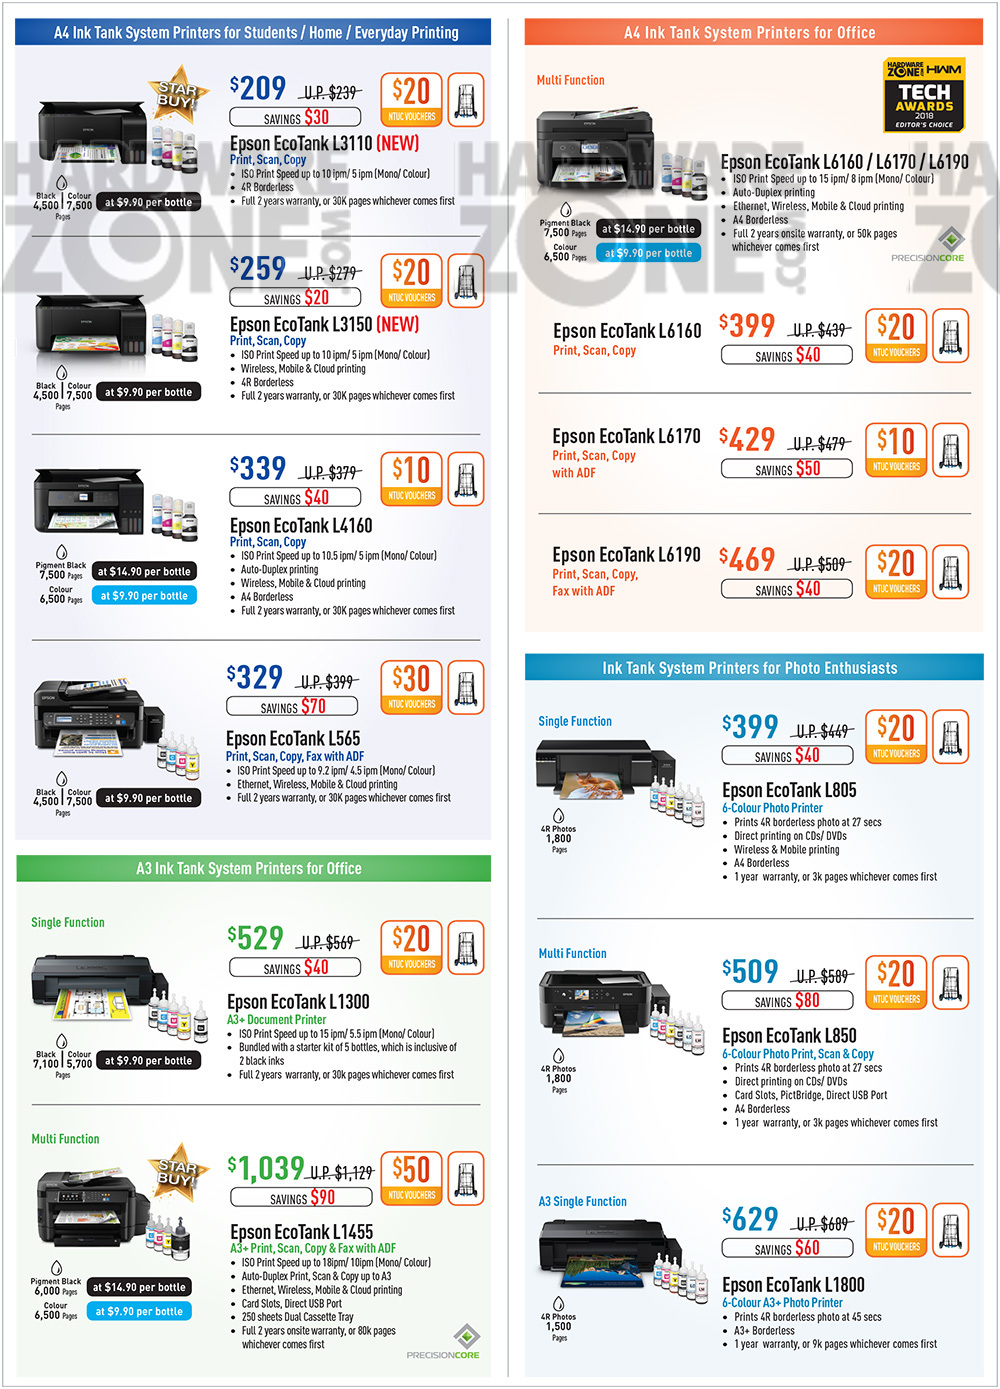 Epson Printers - Pg 3 Brochures from SITEX 2018 Singapore on Tech